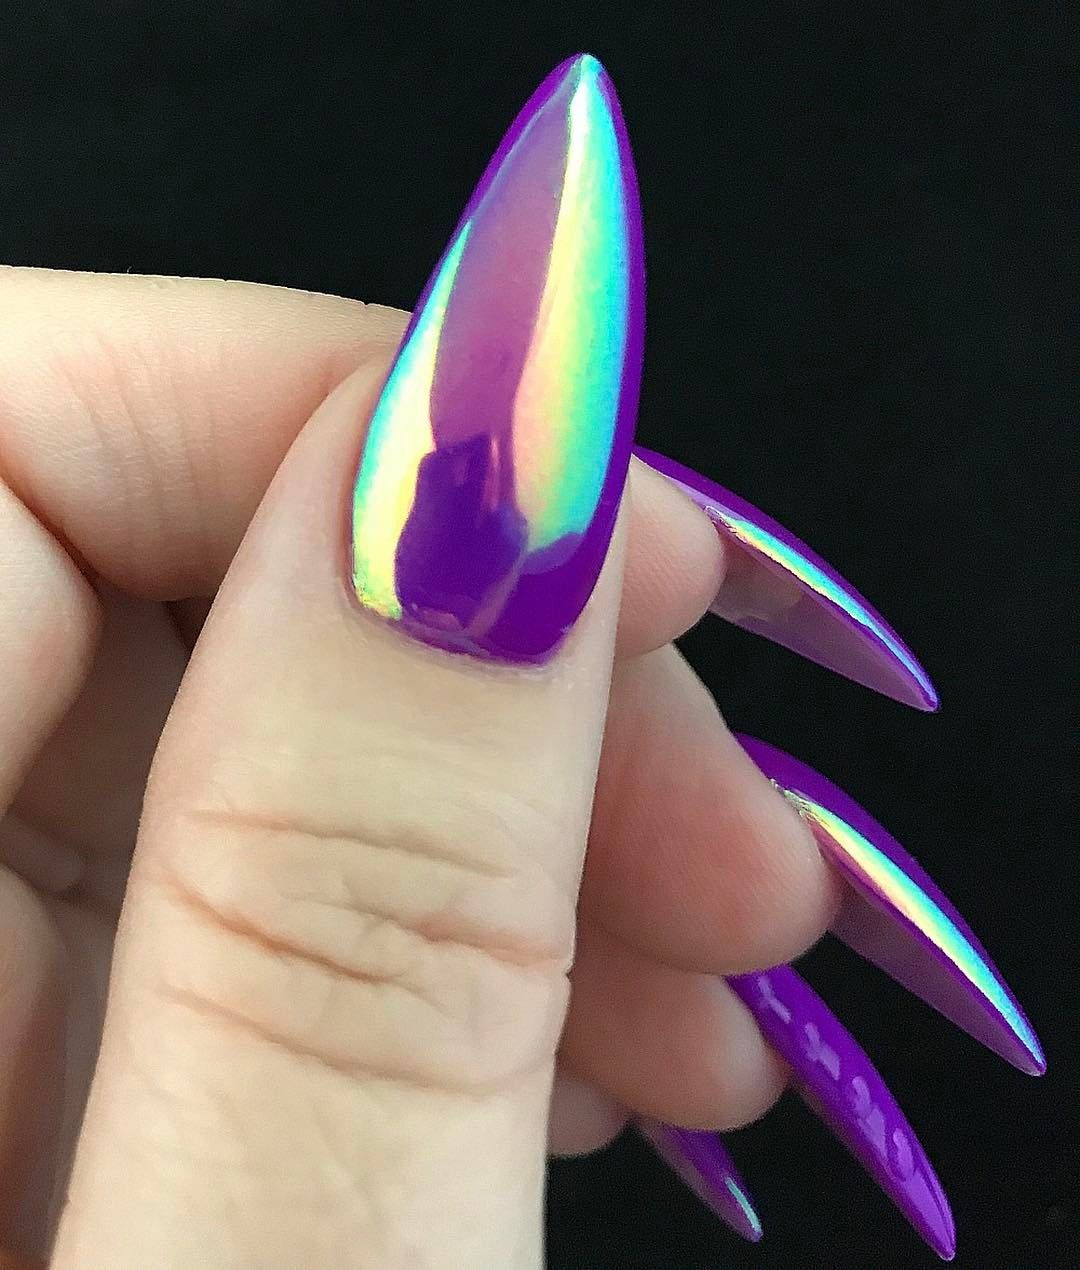 17 nail purple art design example new photo